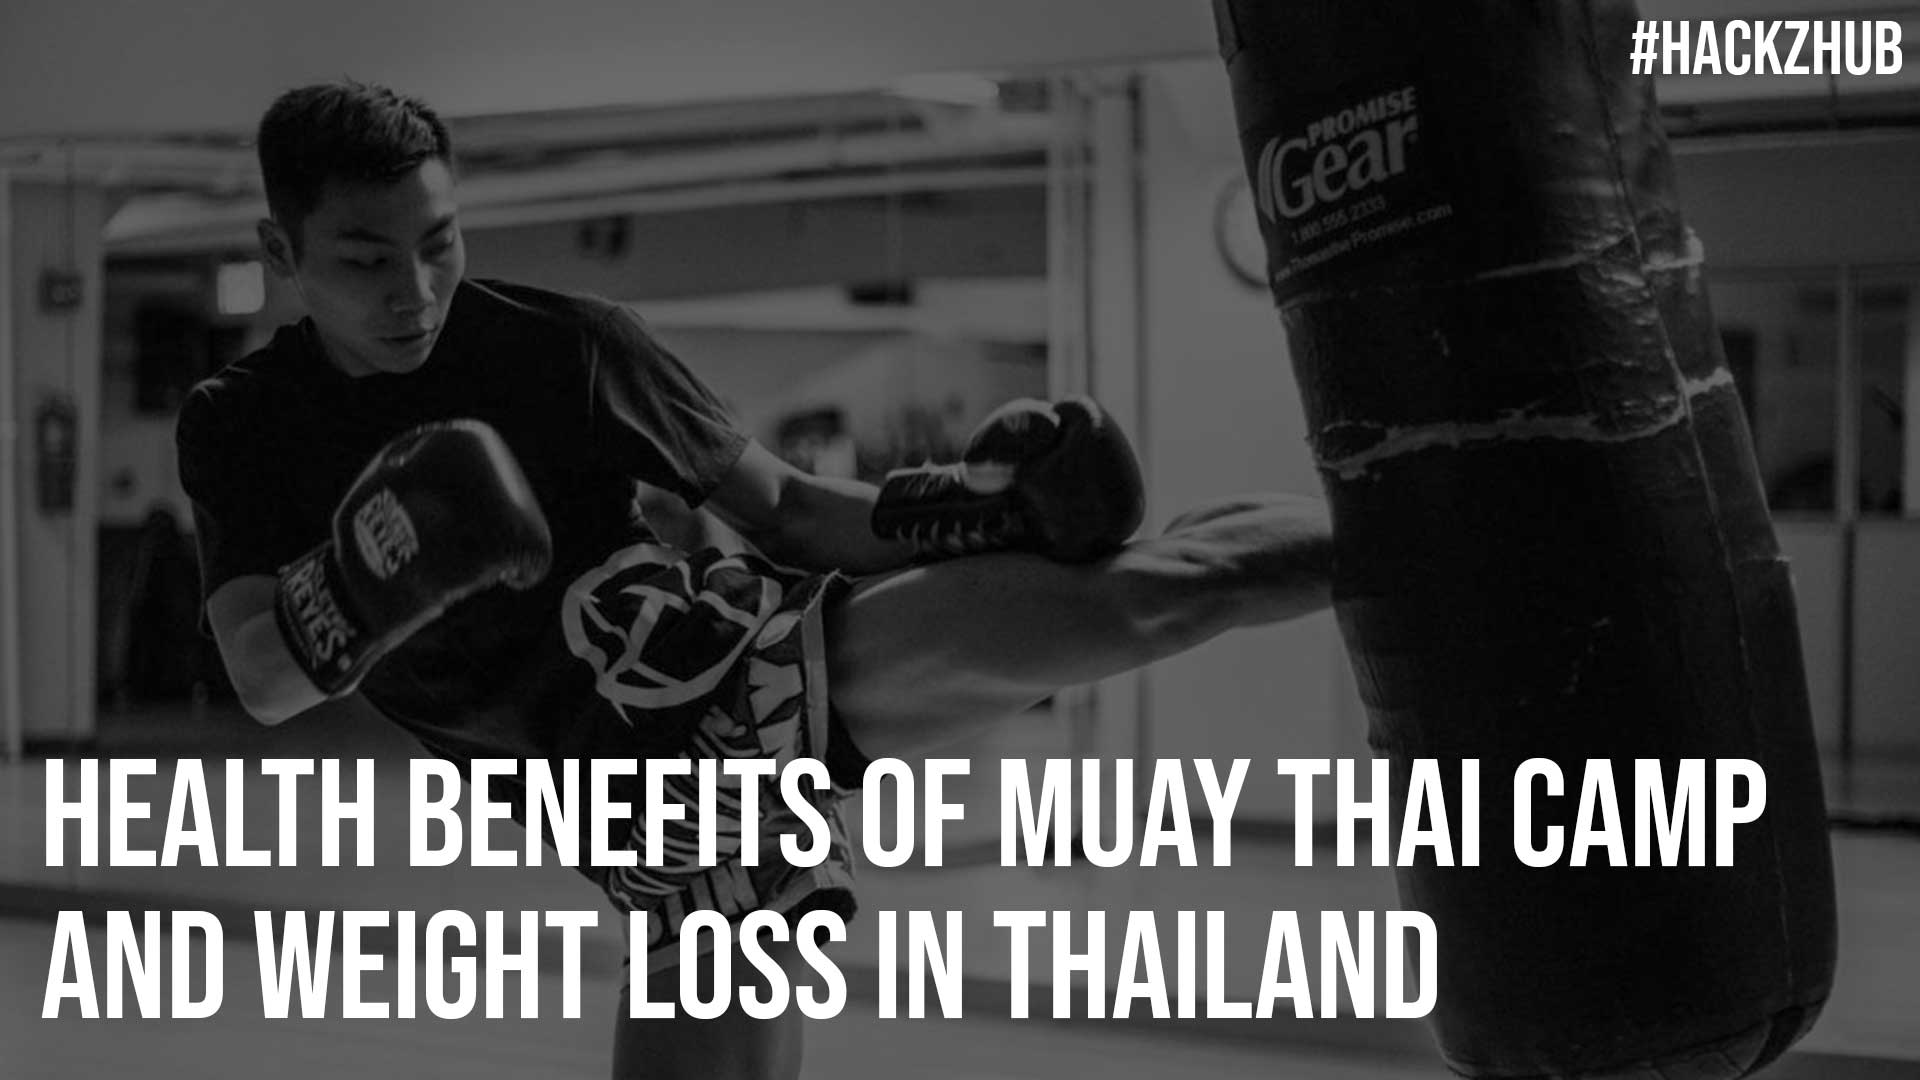 Health Benefits of Muay Thai Camp and Weight Loss in Thailand